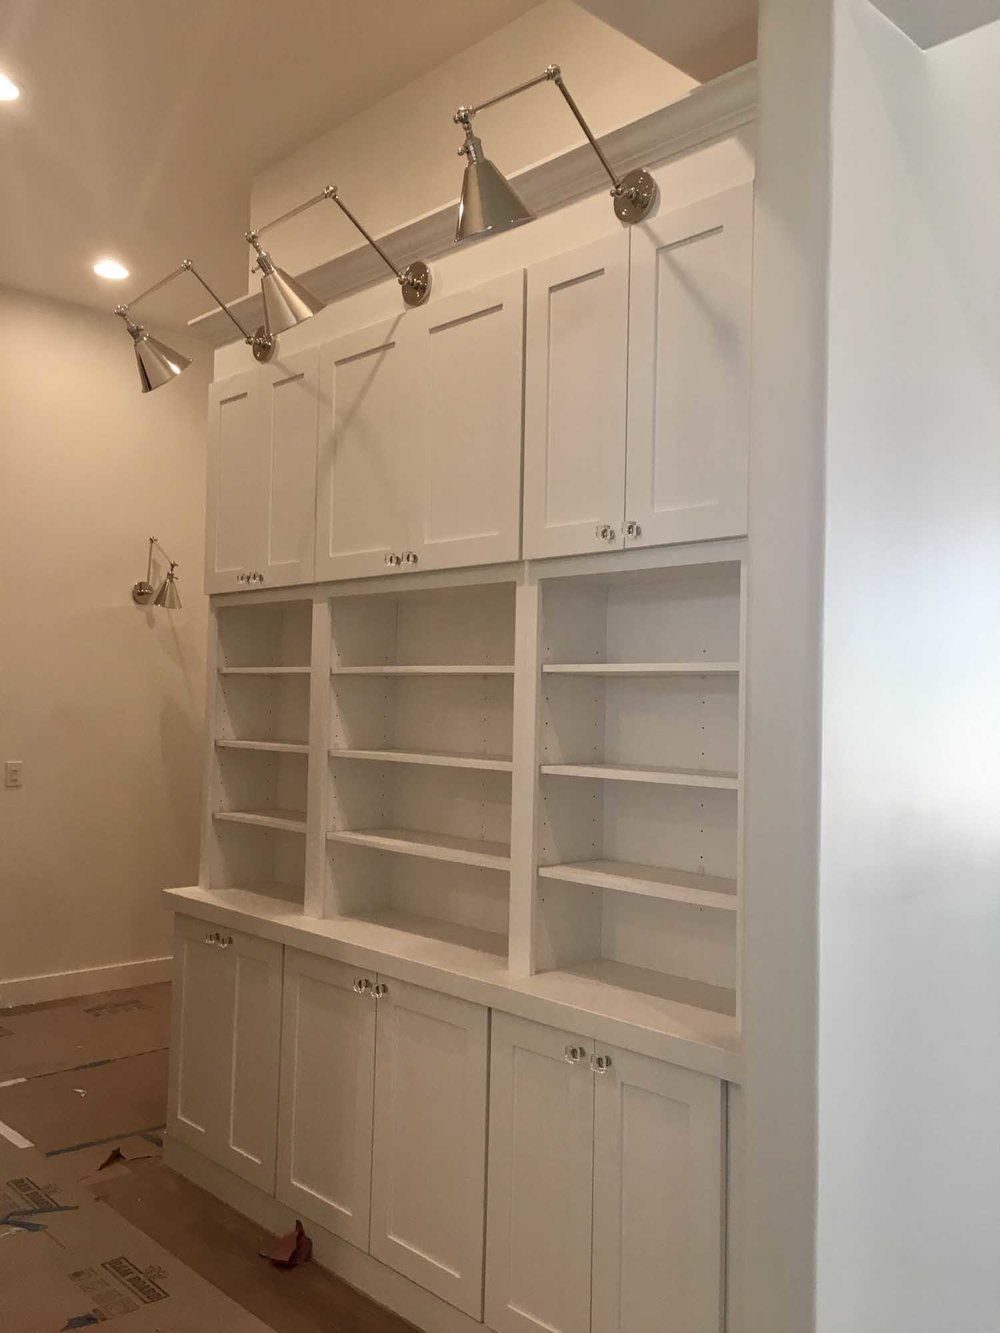 Room with white cabinet and cupboard with overhead lights